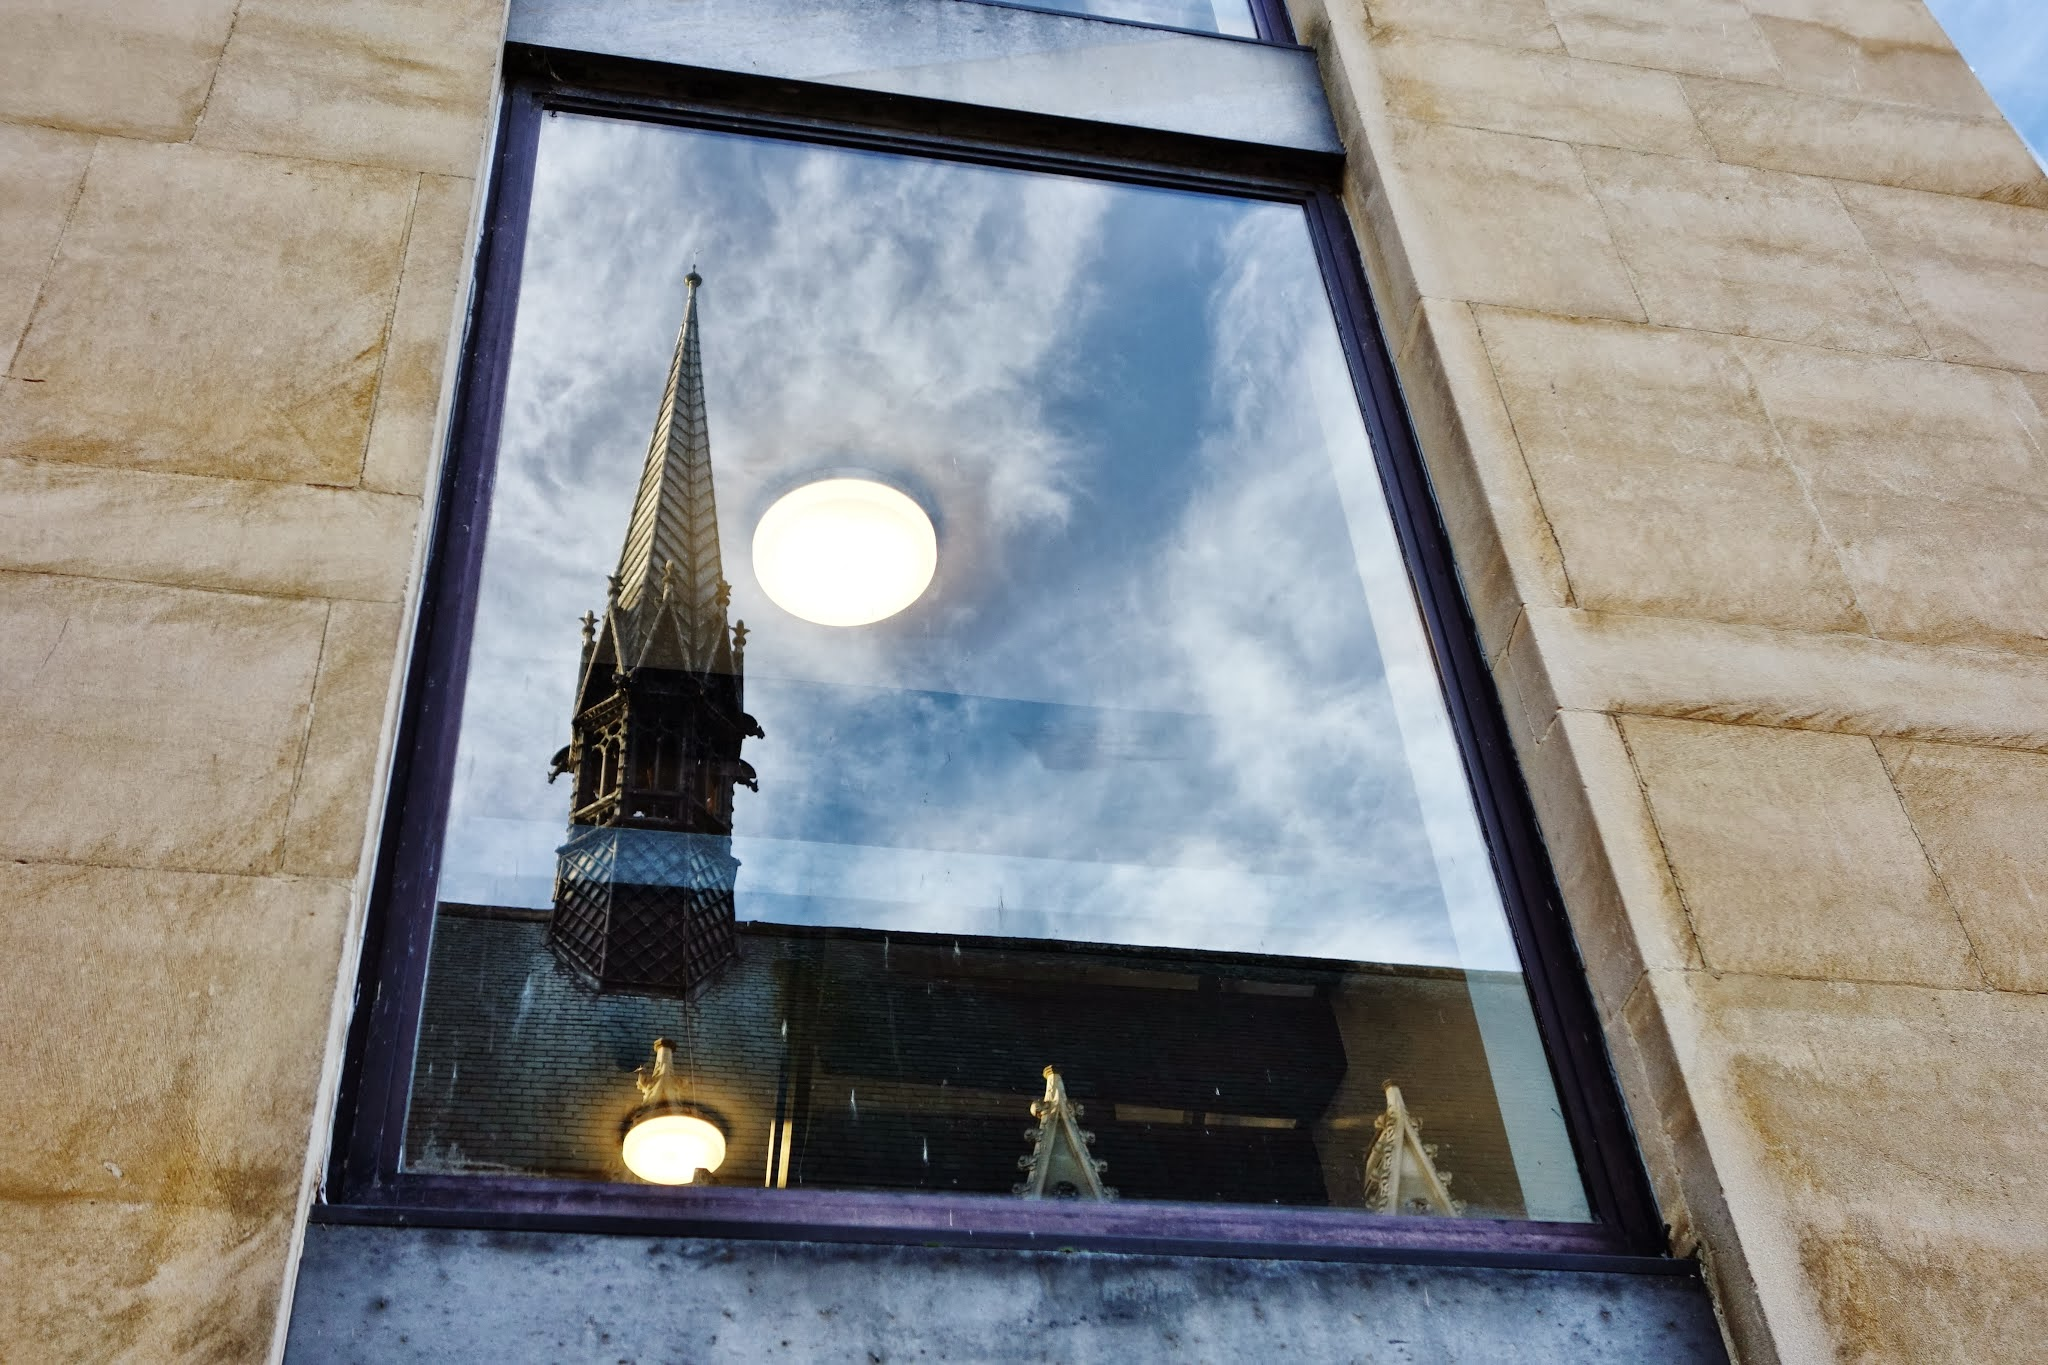 Reflection of chapel spire in staircase 12 window